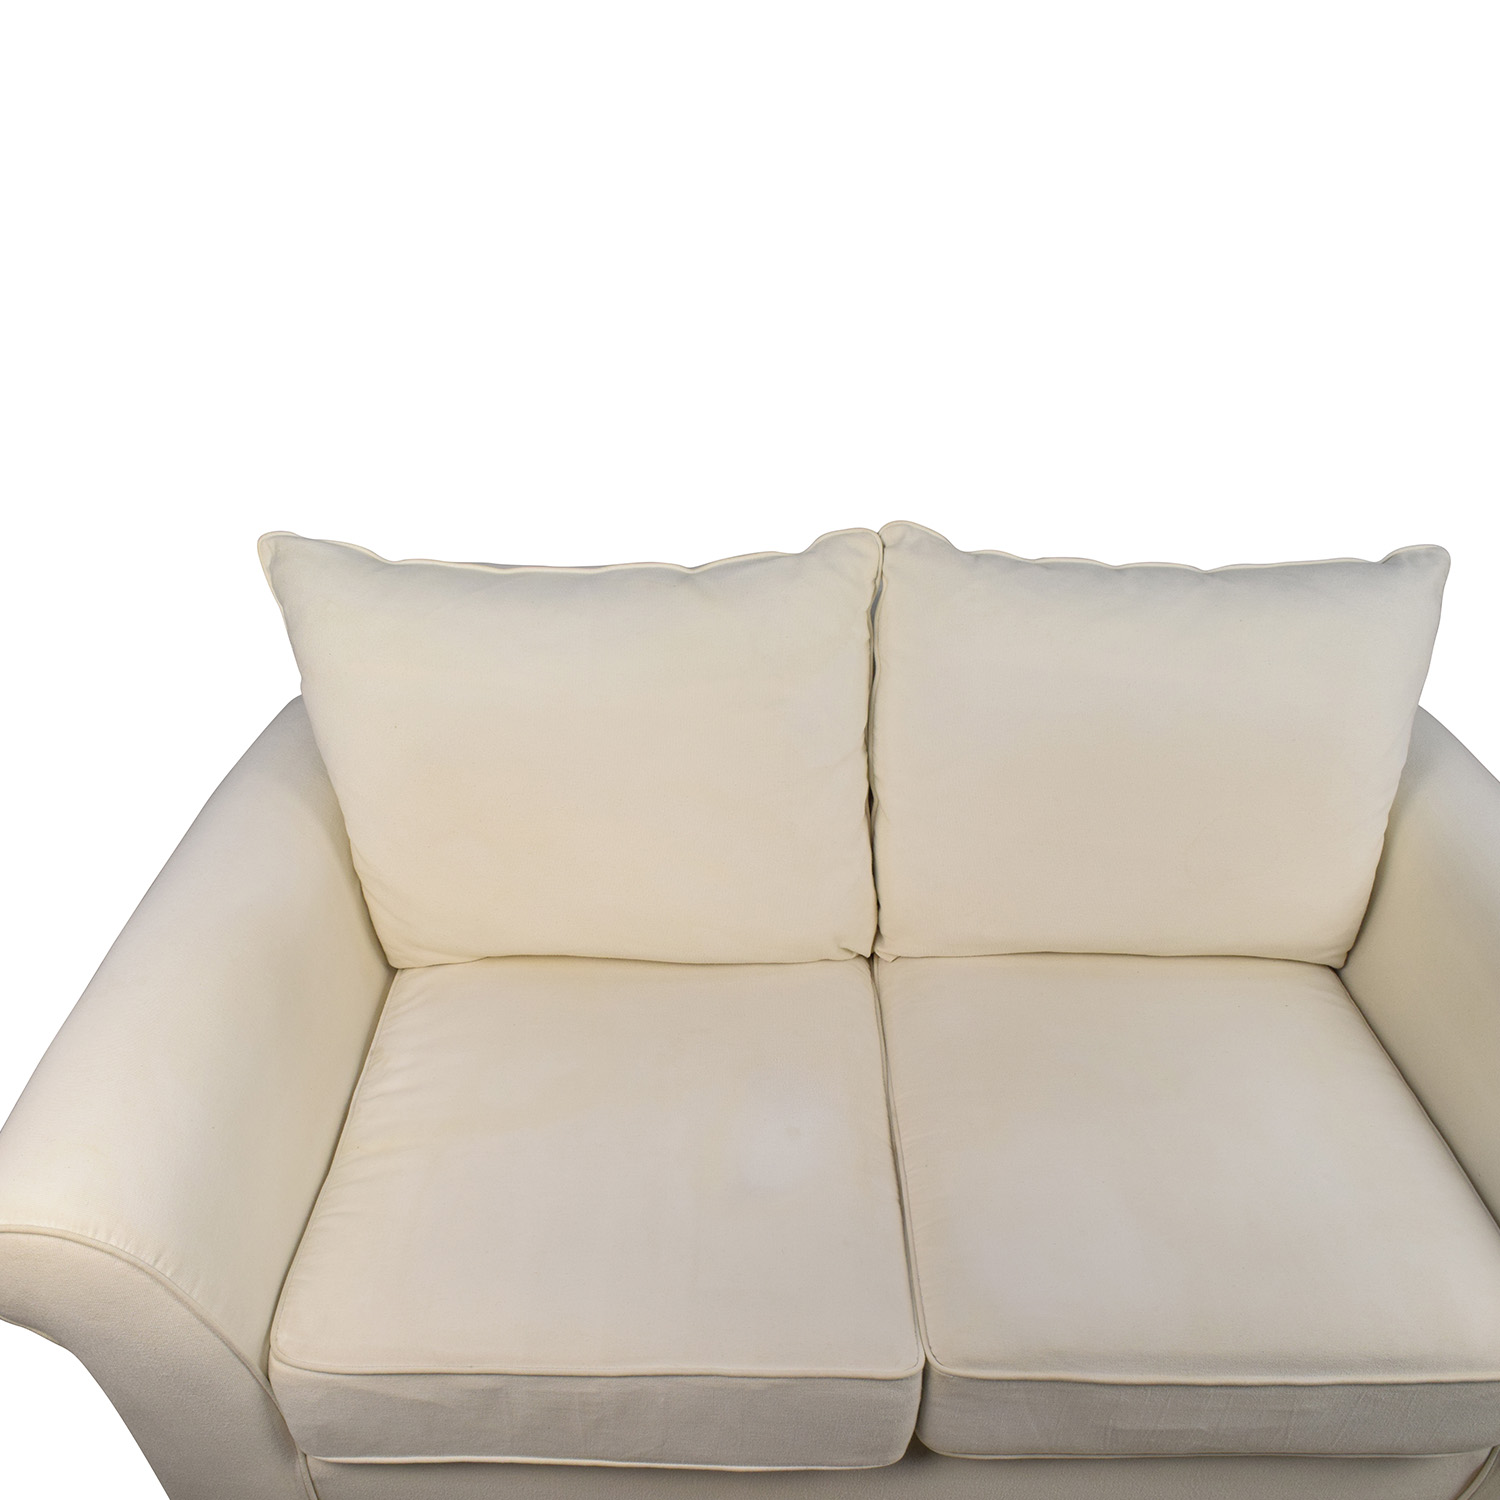 ... Shop Pottery Barn Pottery Barn Comfort Roll Arm Natural Loveseat Online  ...